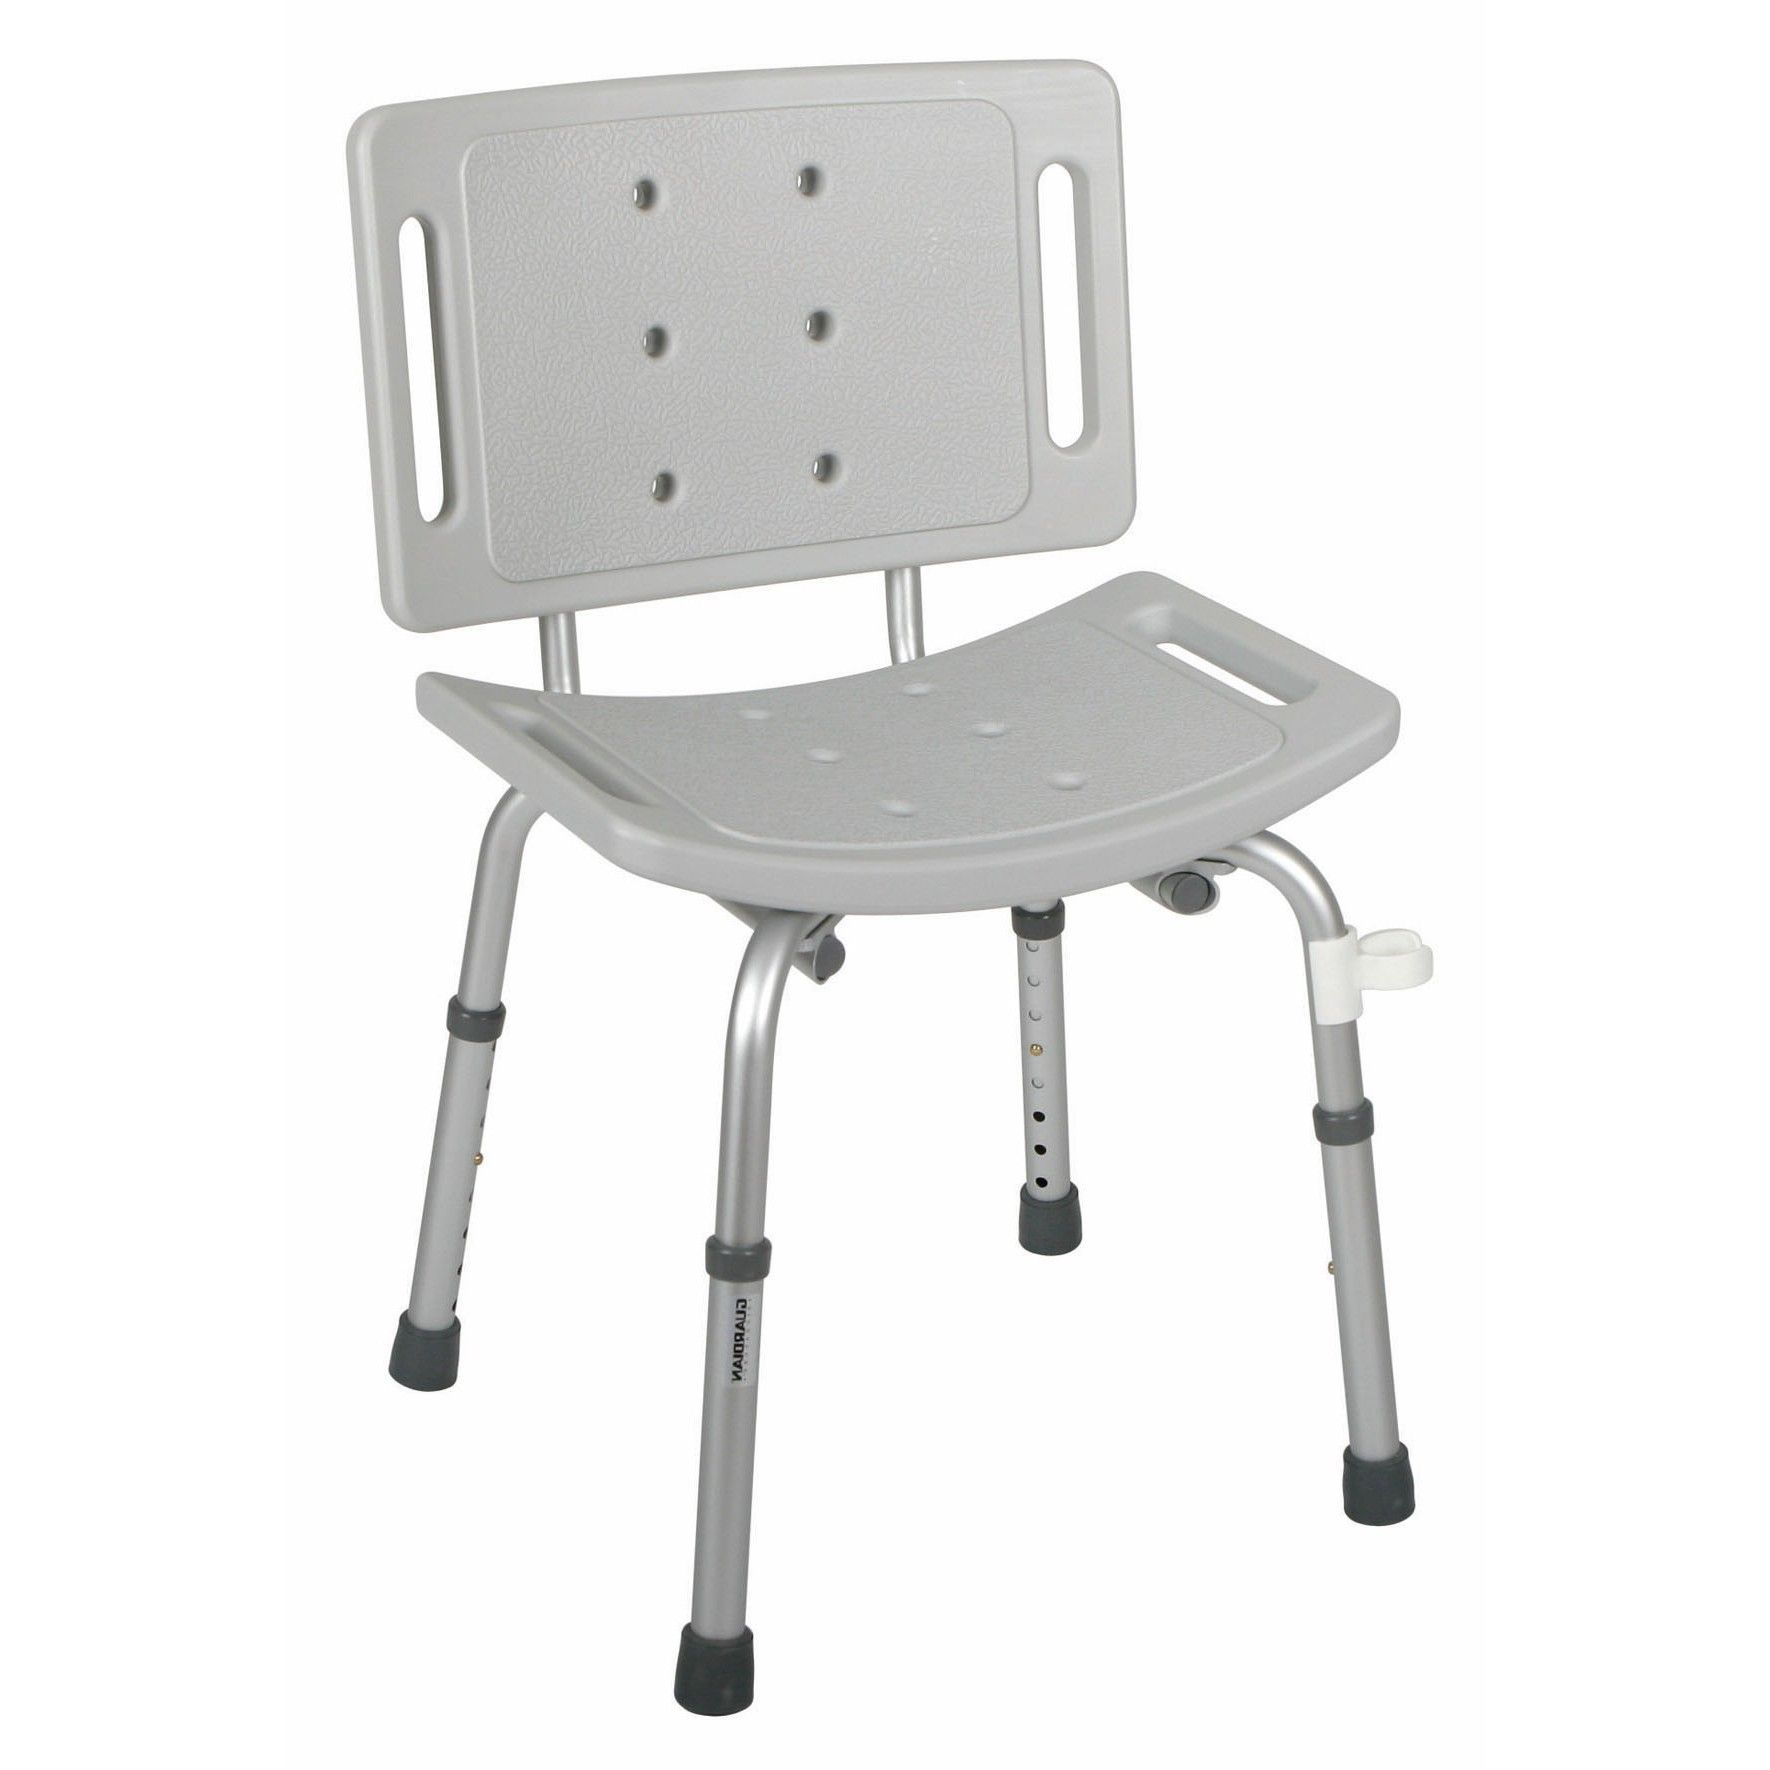 Elderly shower chair, bathtub handicap accessories, bath chair for ...